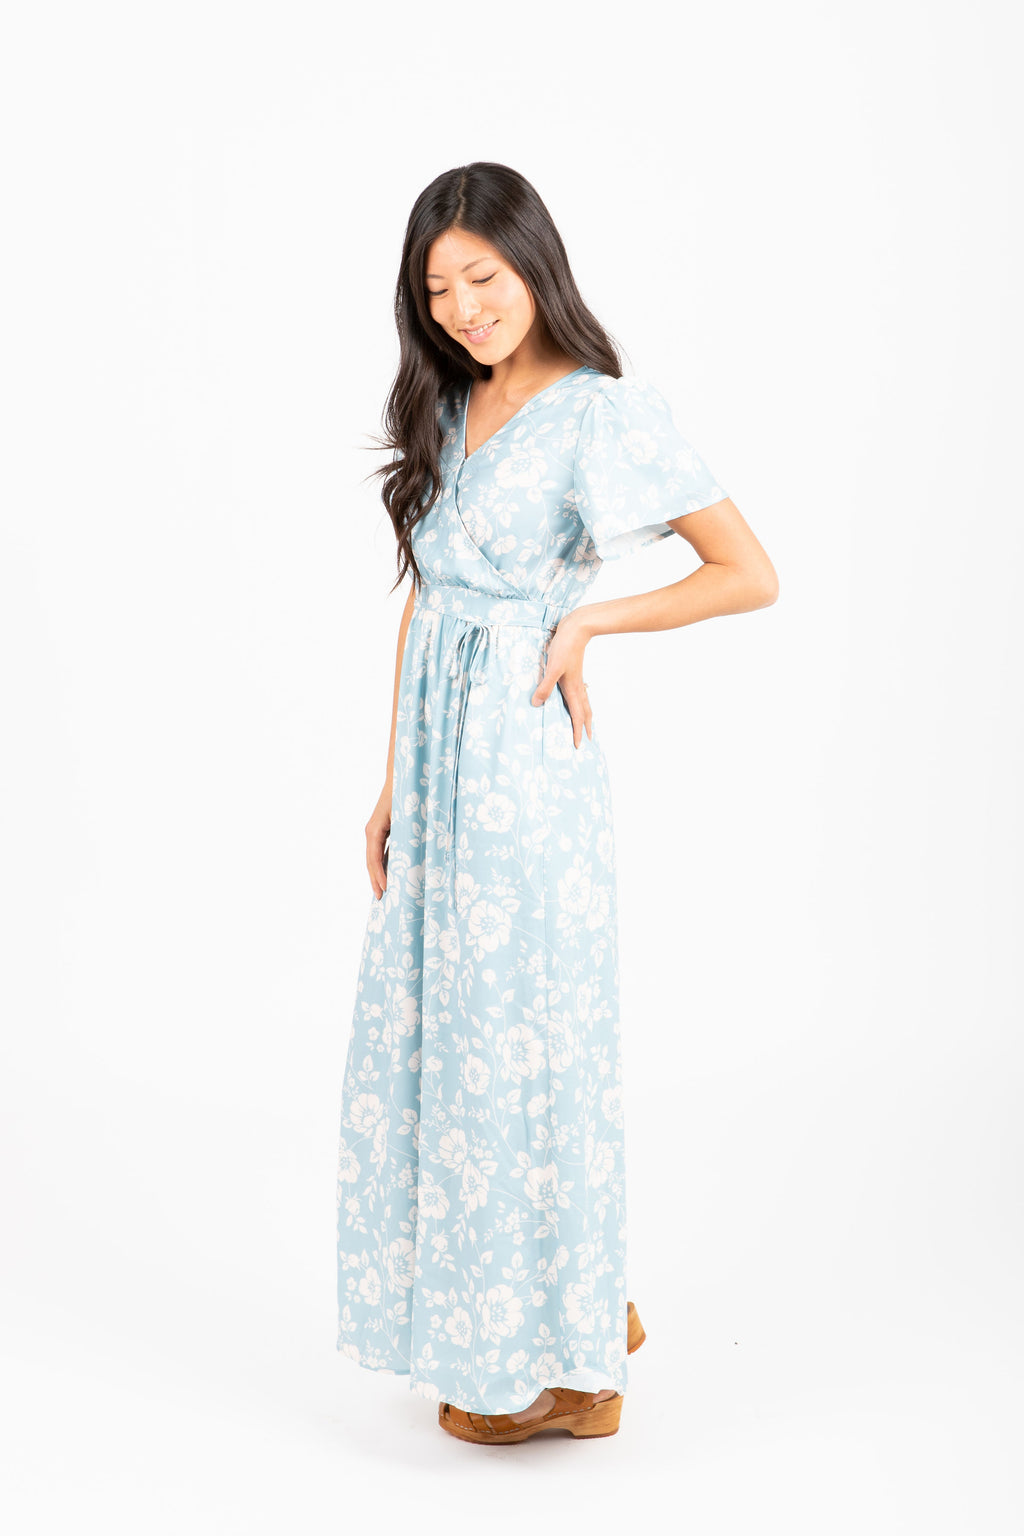 Piper & Scoot: The Cake Floral Maxi Dress in Light Blue